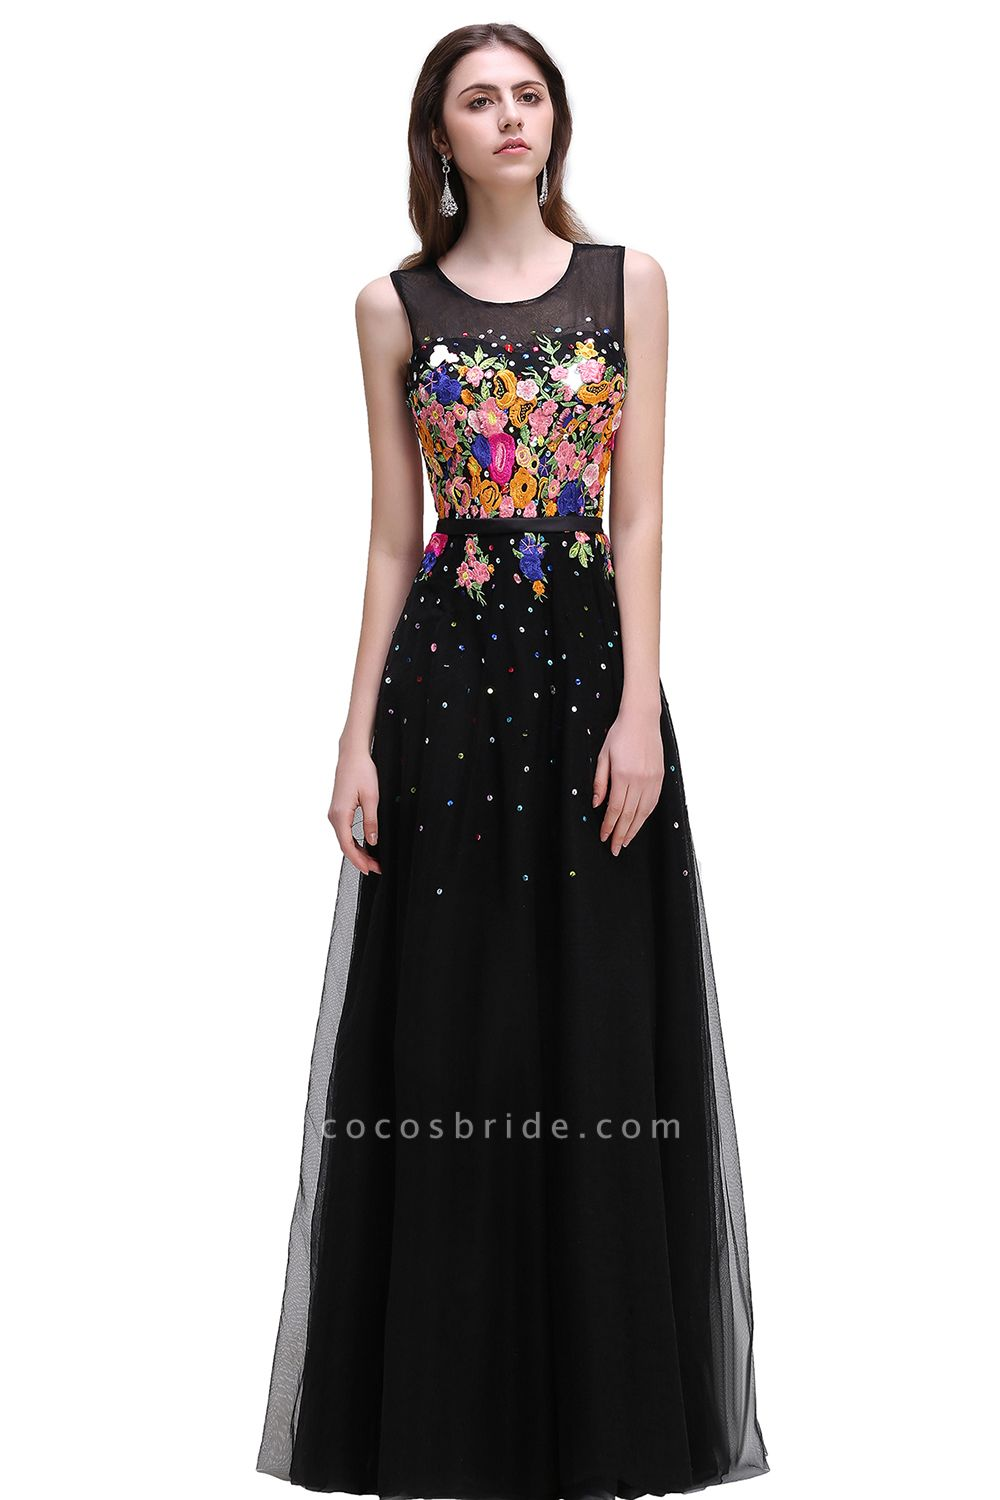 CAMERON | A-line Jewel Neck Tulle Black Prom Dresses with Embroidery Flowers